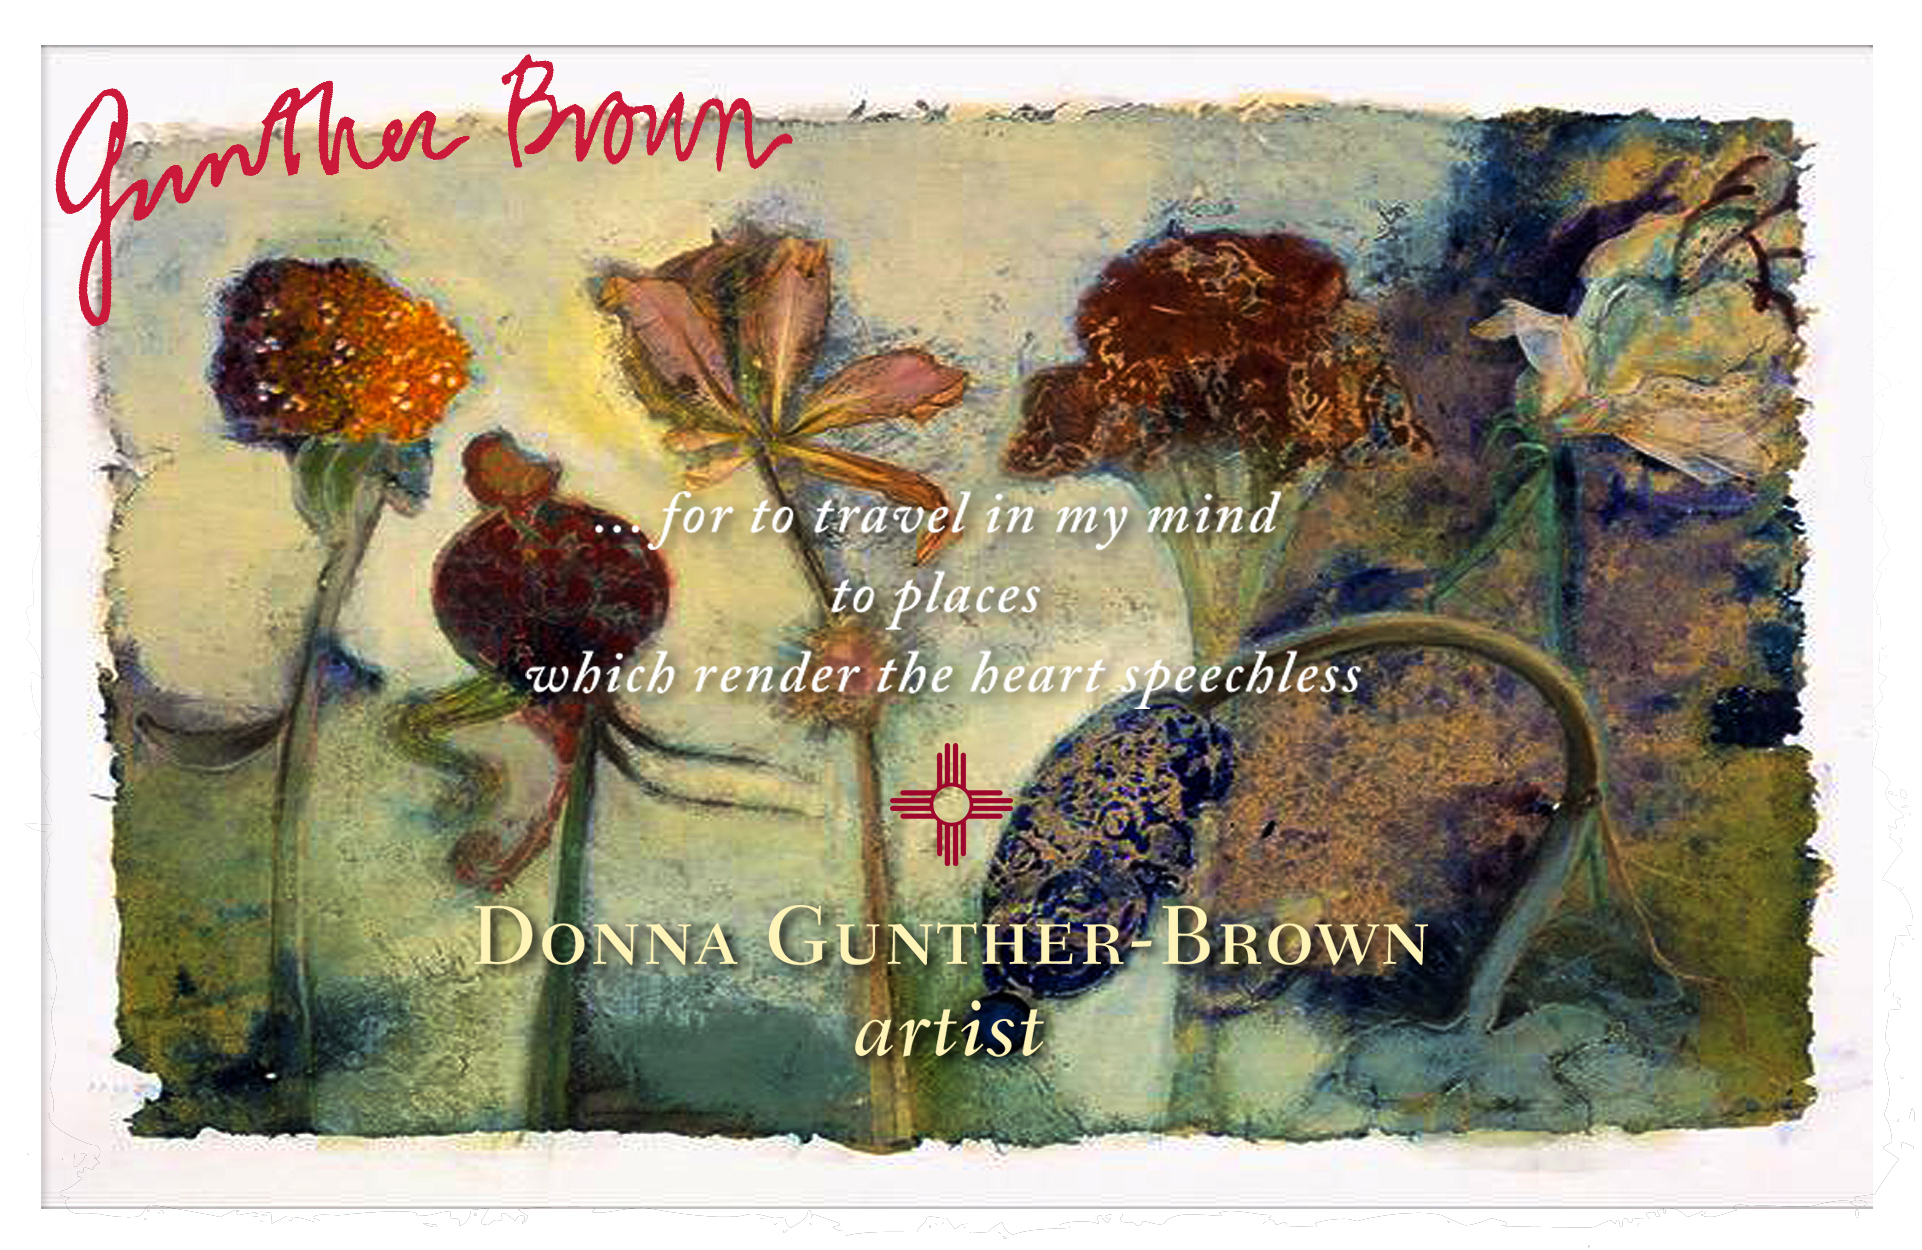 Donna Gunther-Brown, artist